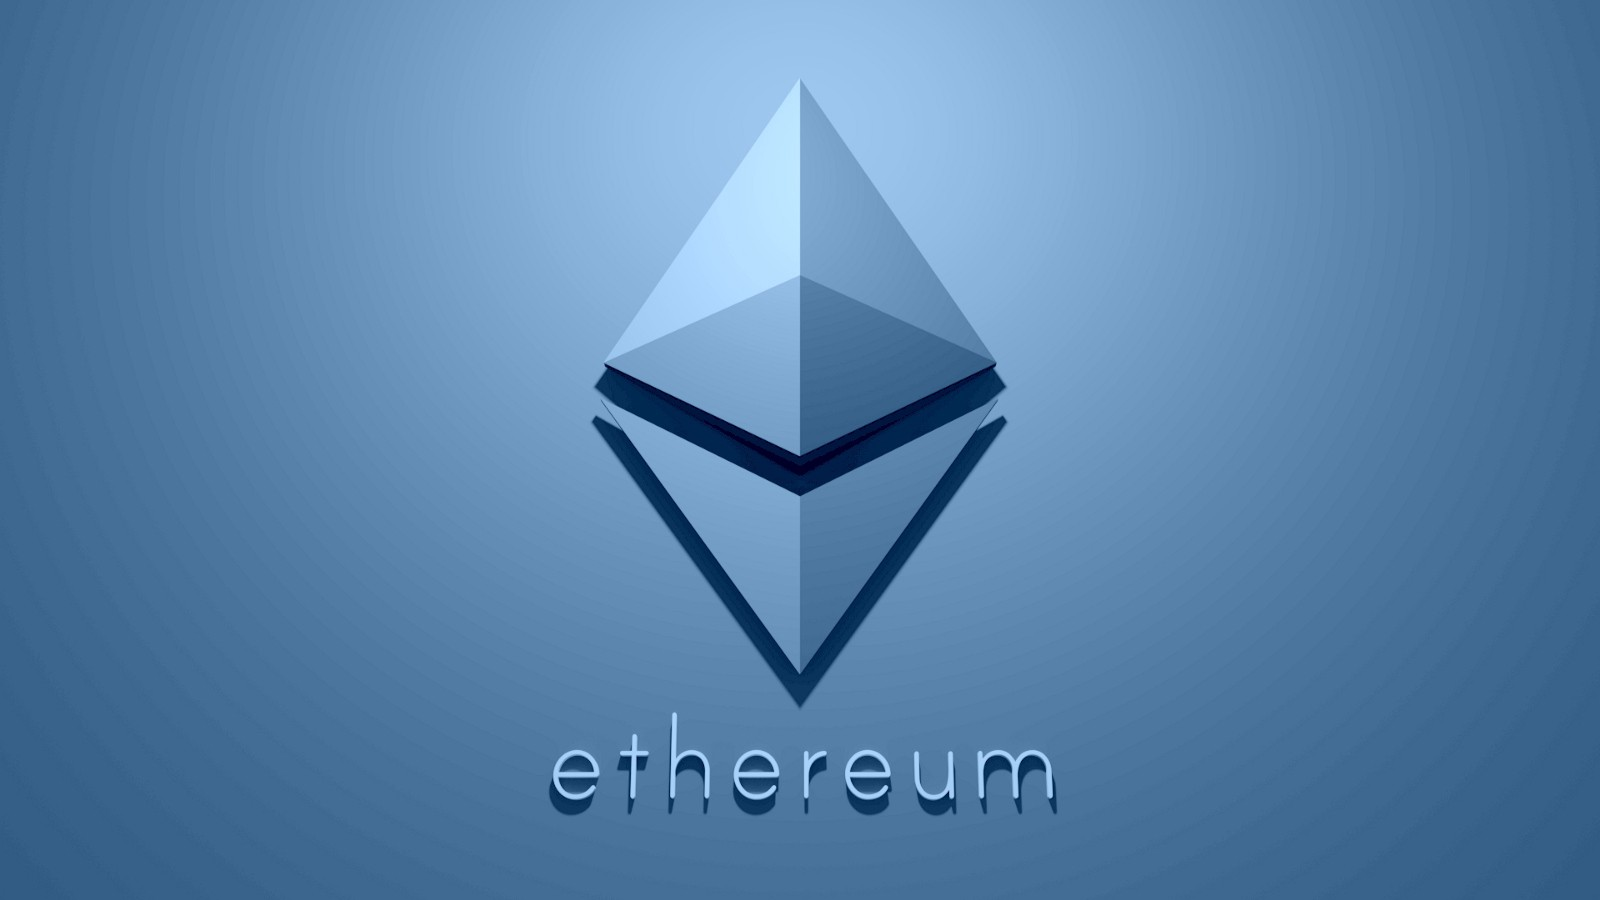 founder of Ethereum